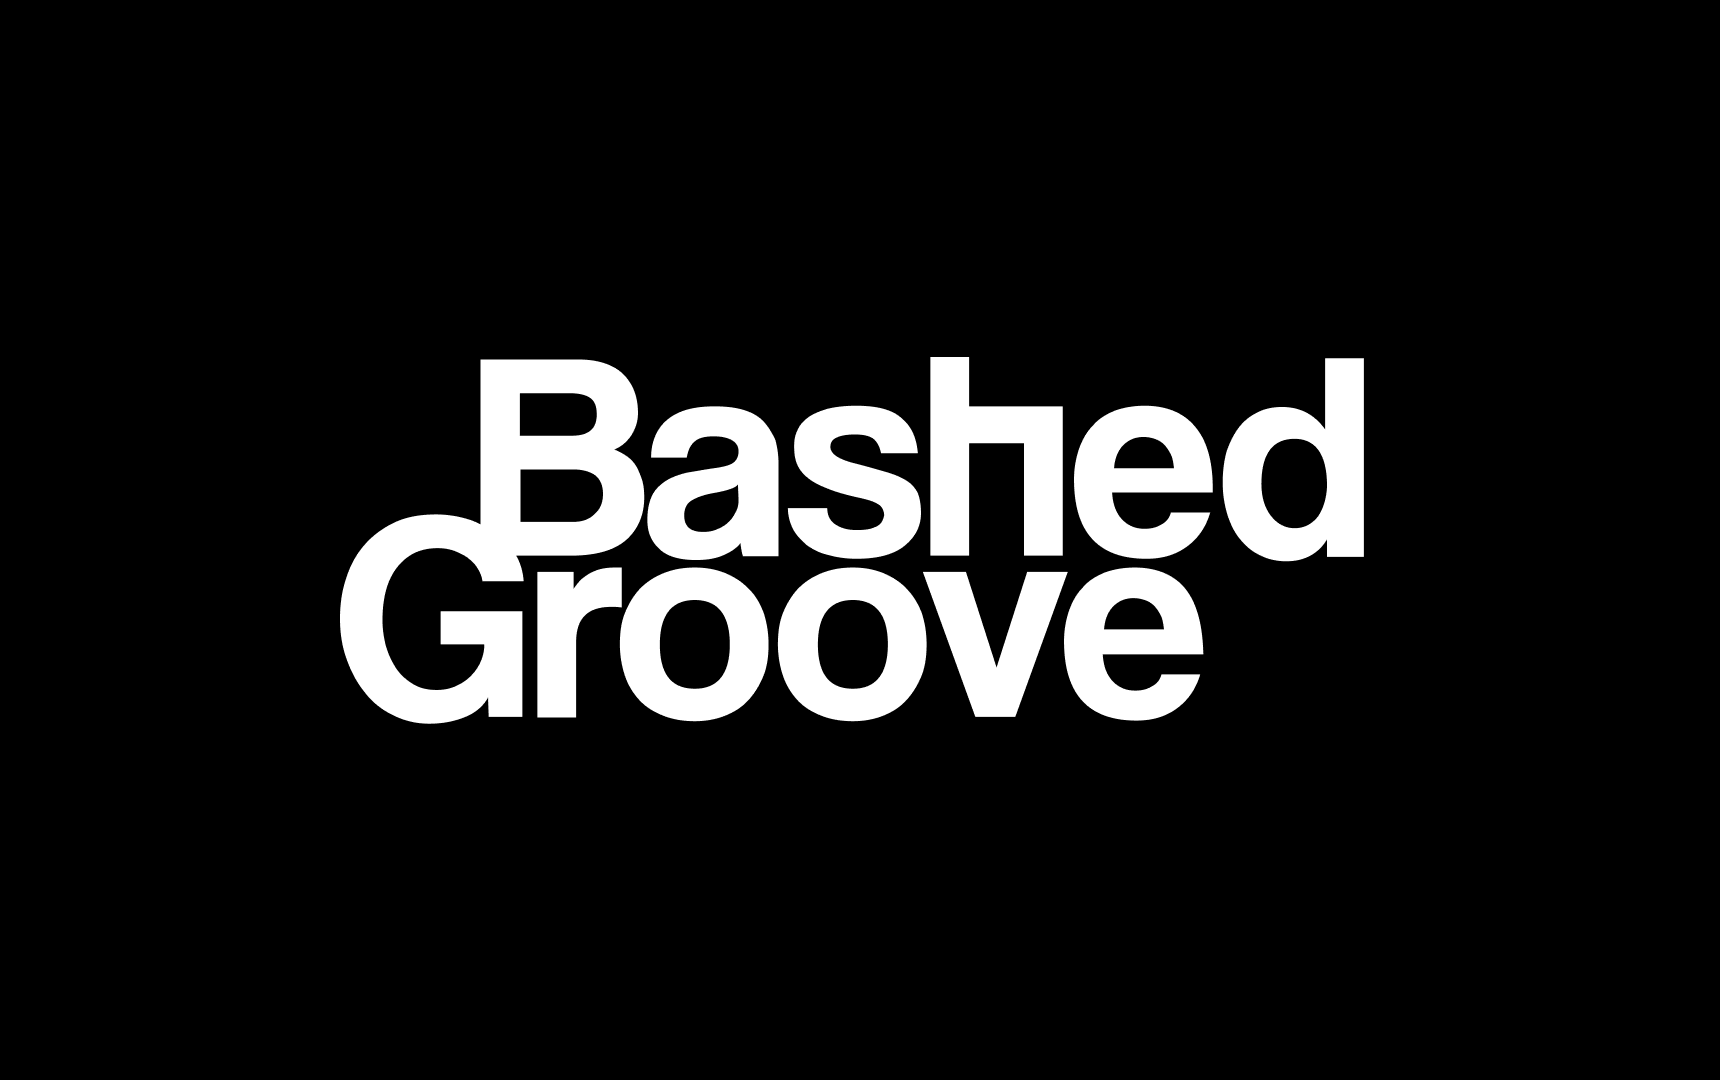 Bashed Groove